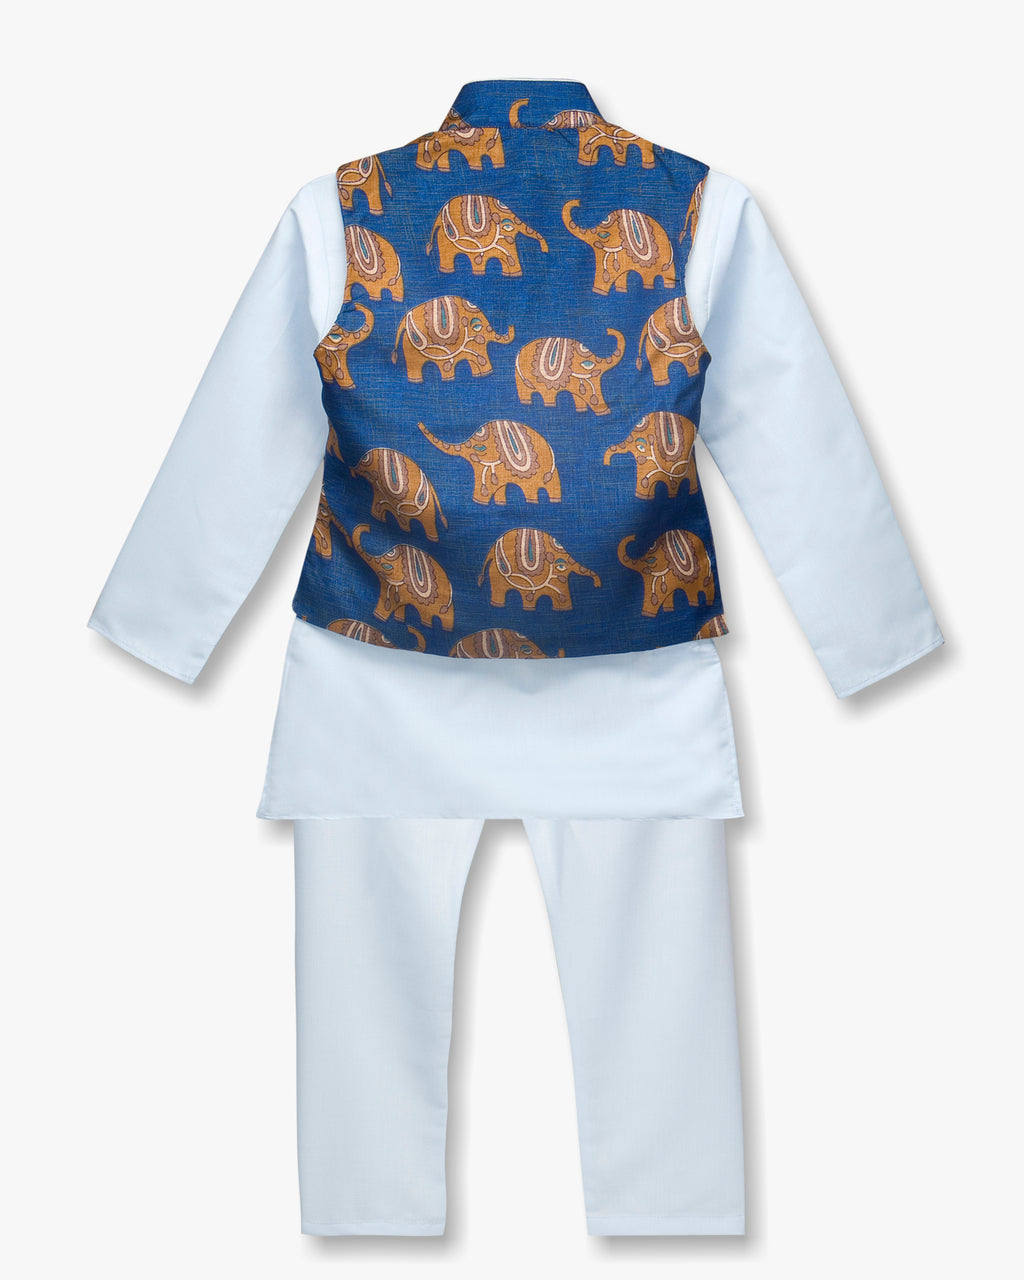 Hathi Print Kurta Pyjama For Boys - Blue